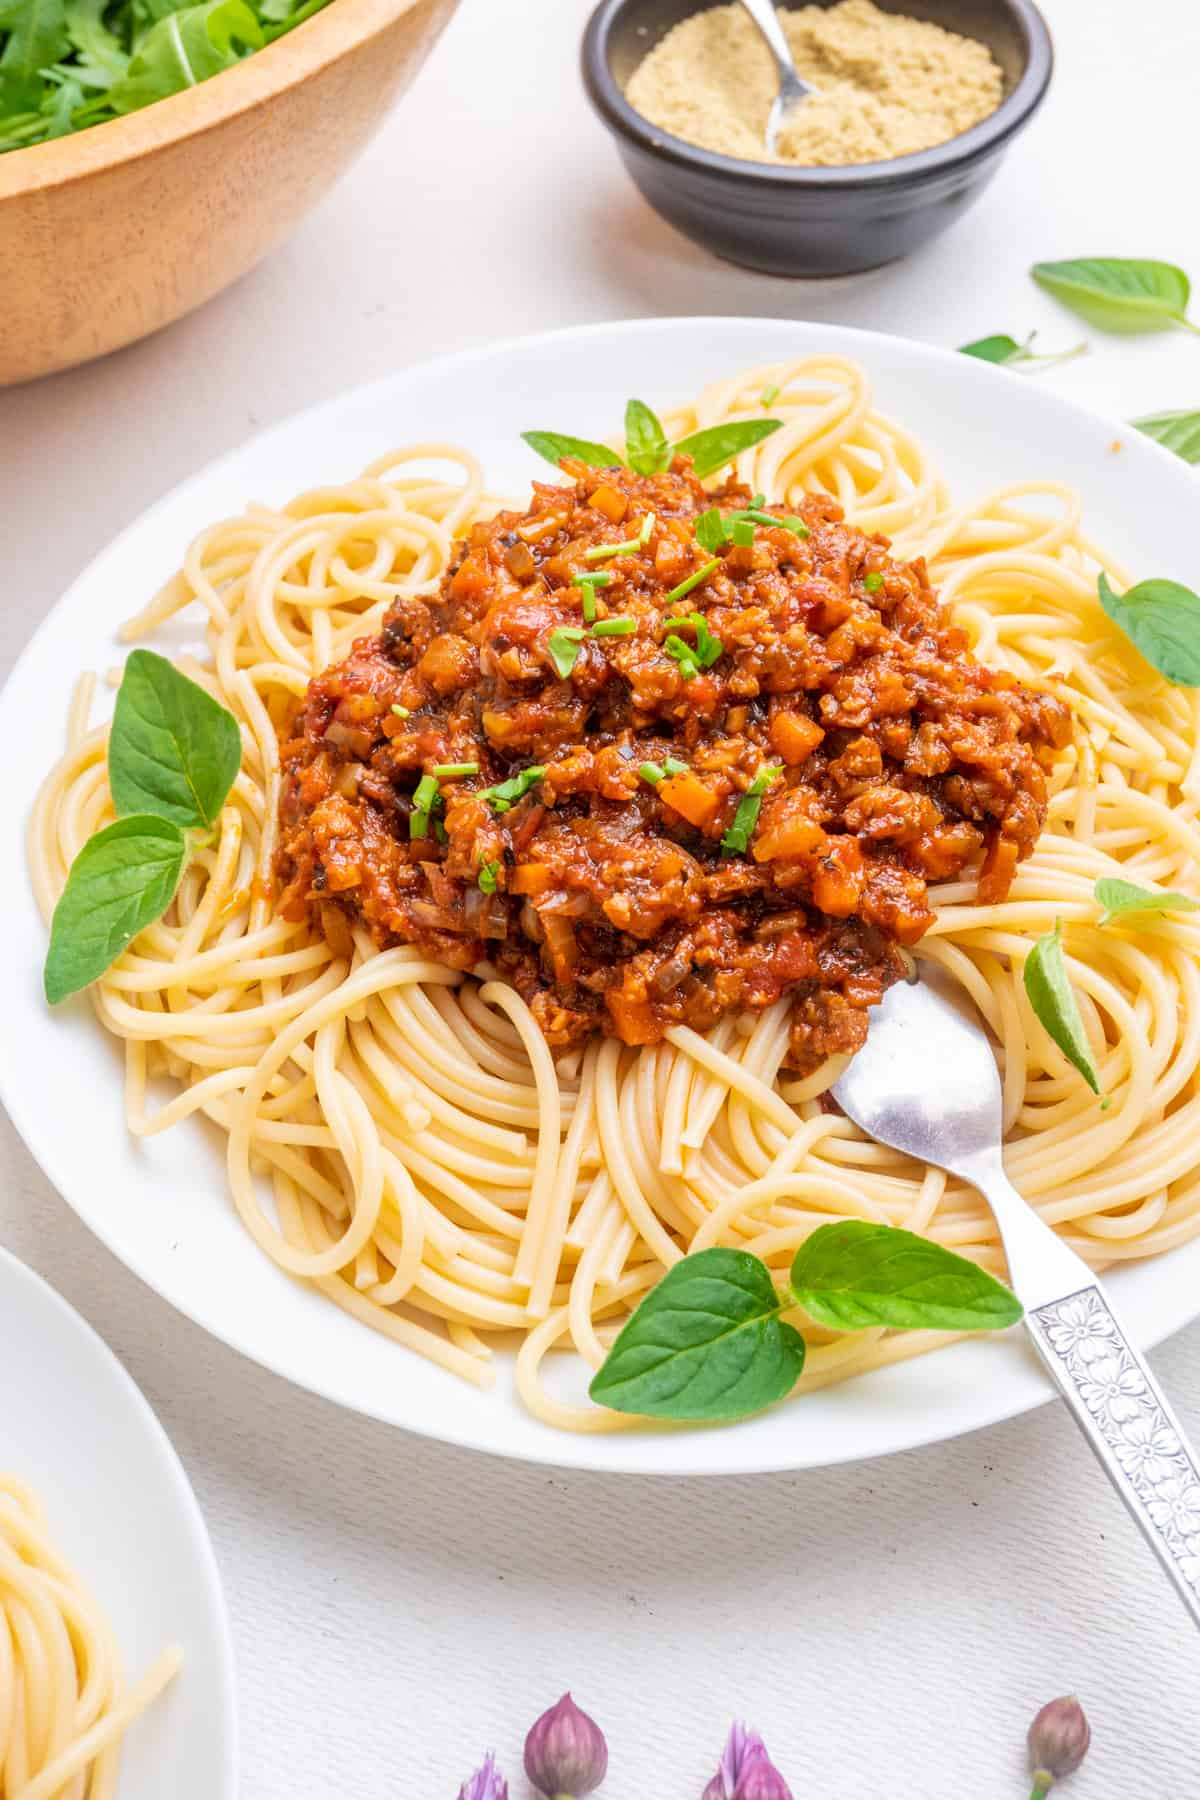 A plate of beautifully swirling spaghetti topped with a red bolognese sauce and served with salad and a ground vegan parmesan condiment.